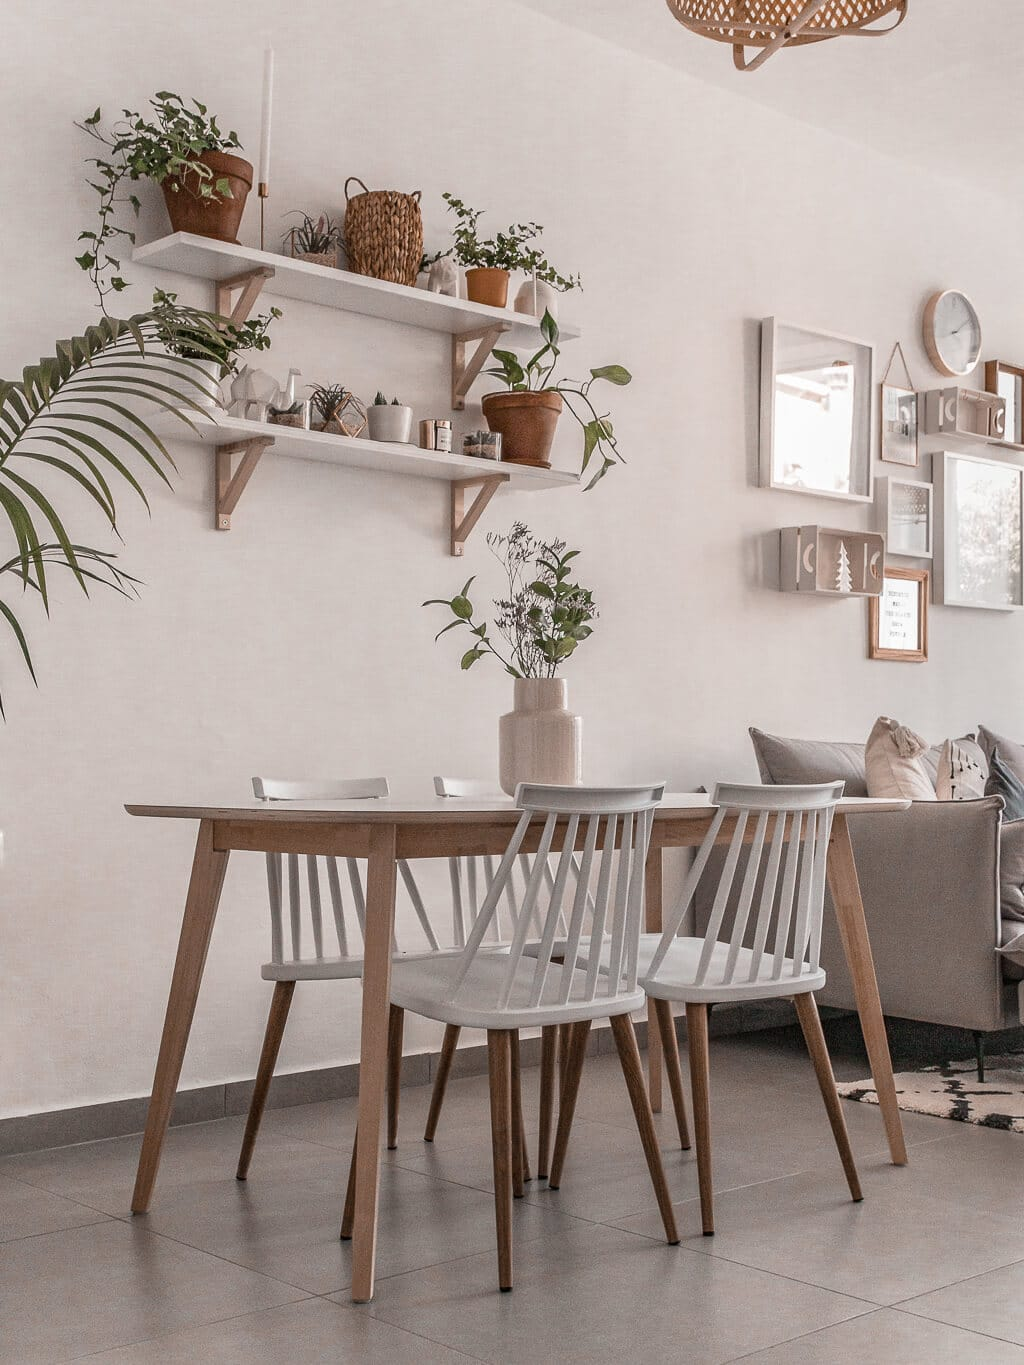 home-styling-in-5-easy-steps